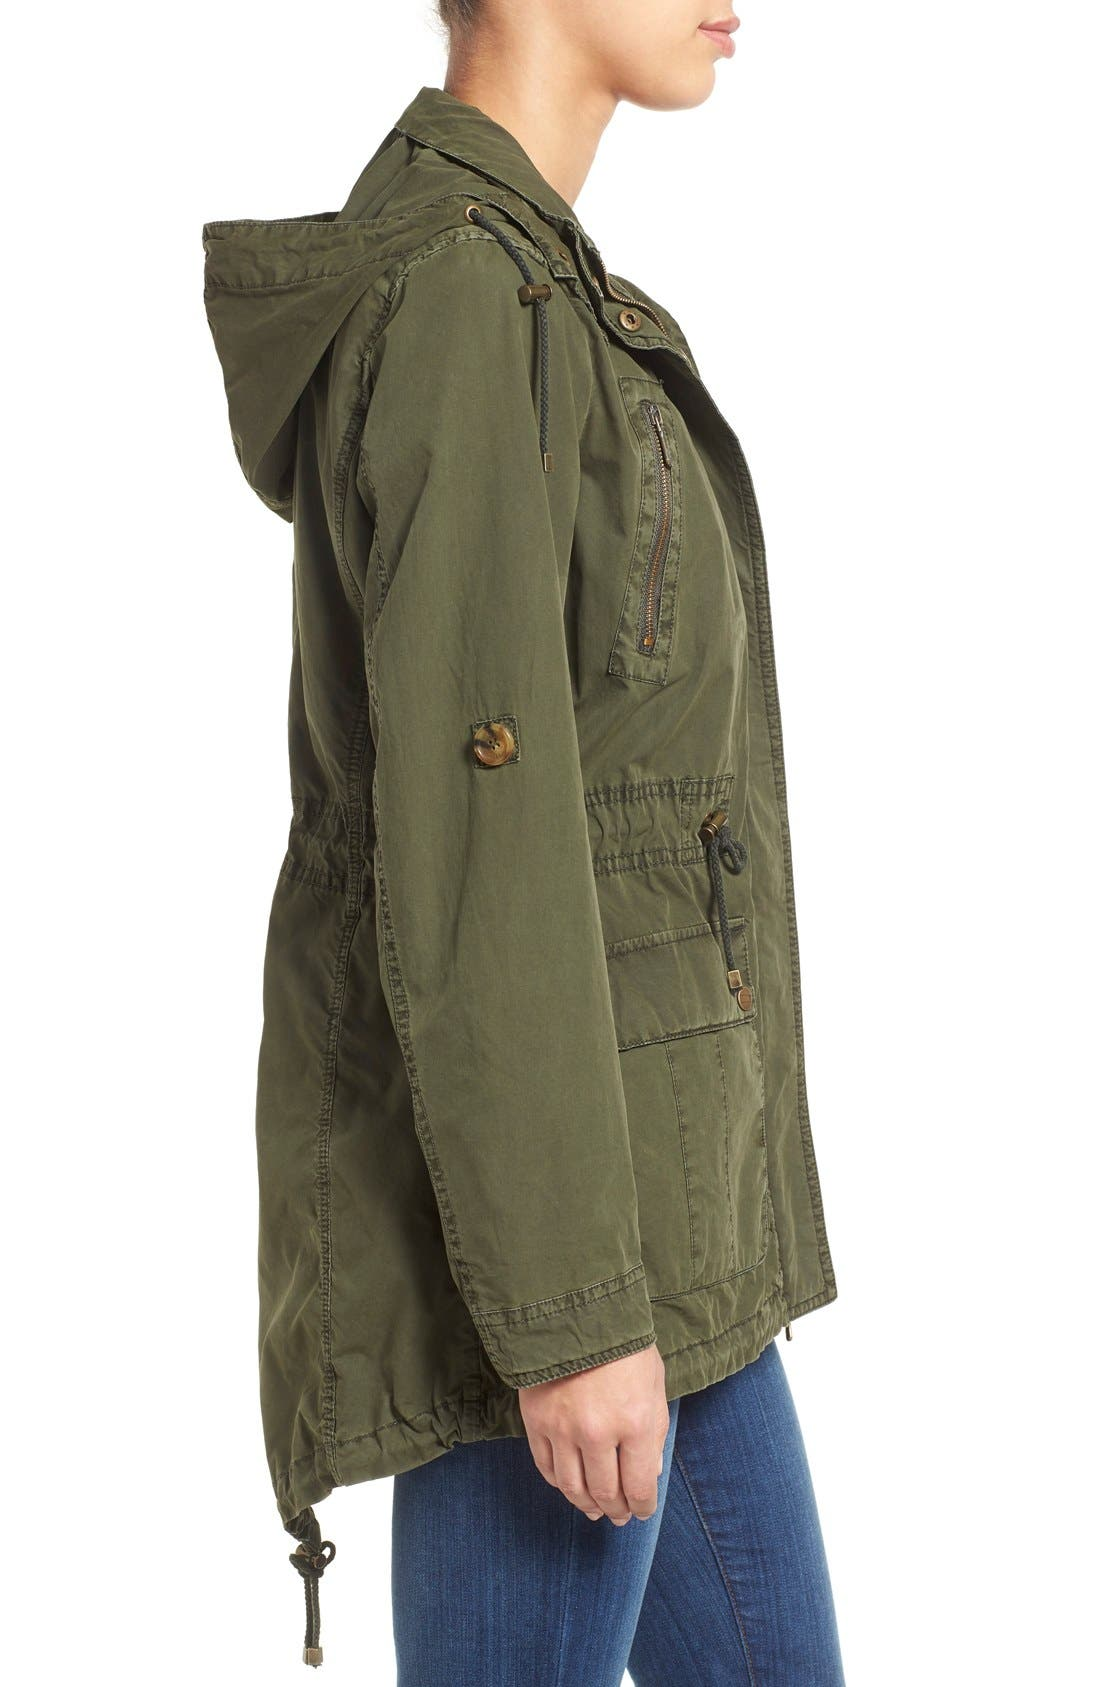 Parachute Hooded Cotton Utility Jacket,                             Alternate thumbnail 3, color,                             Army Green